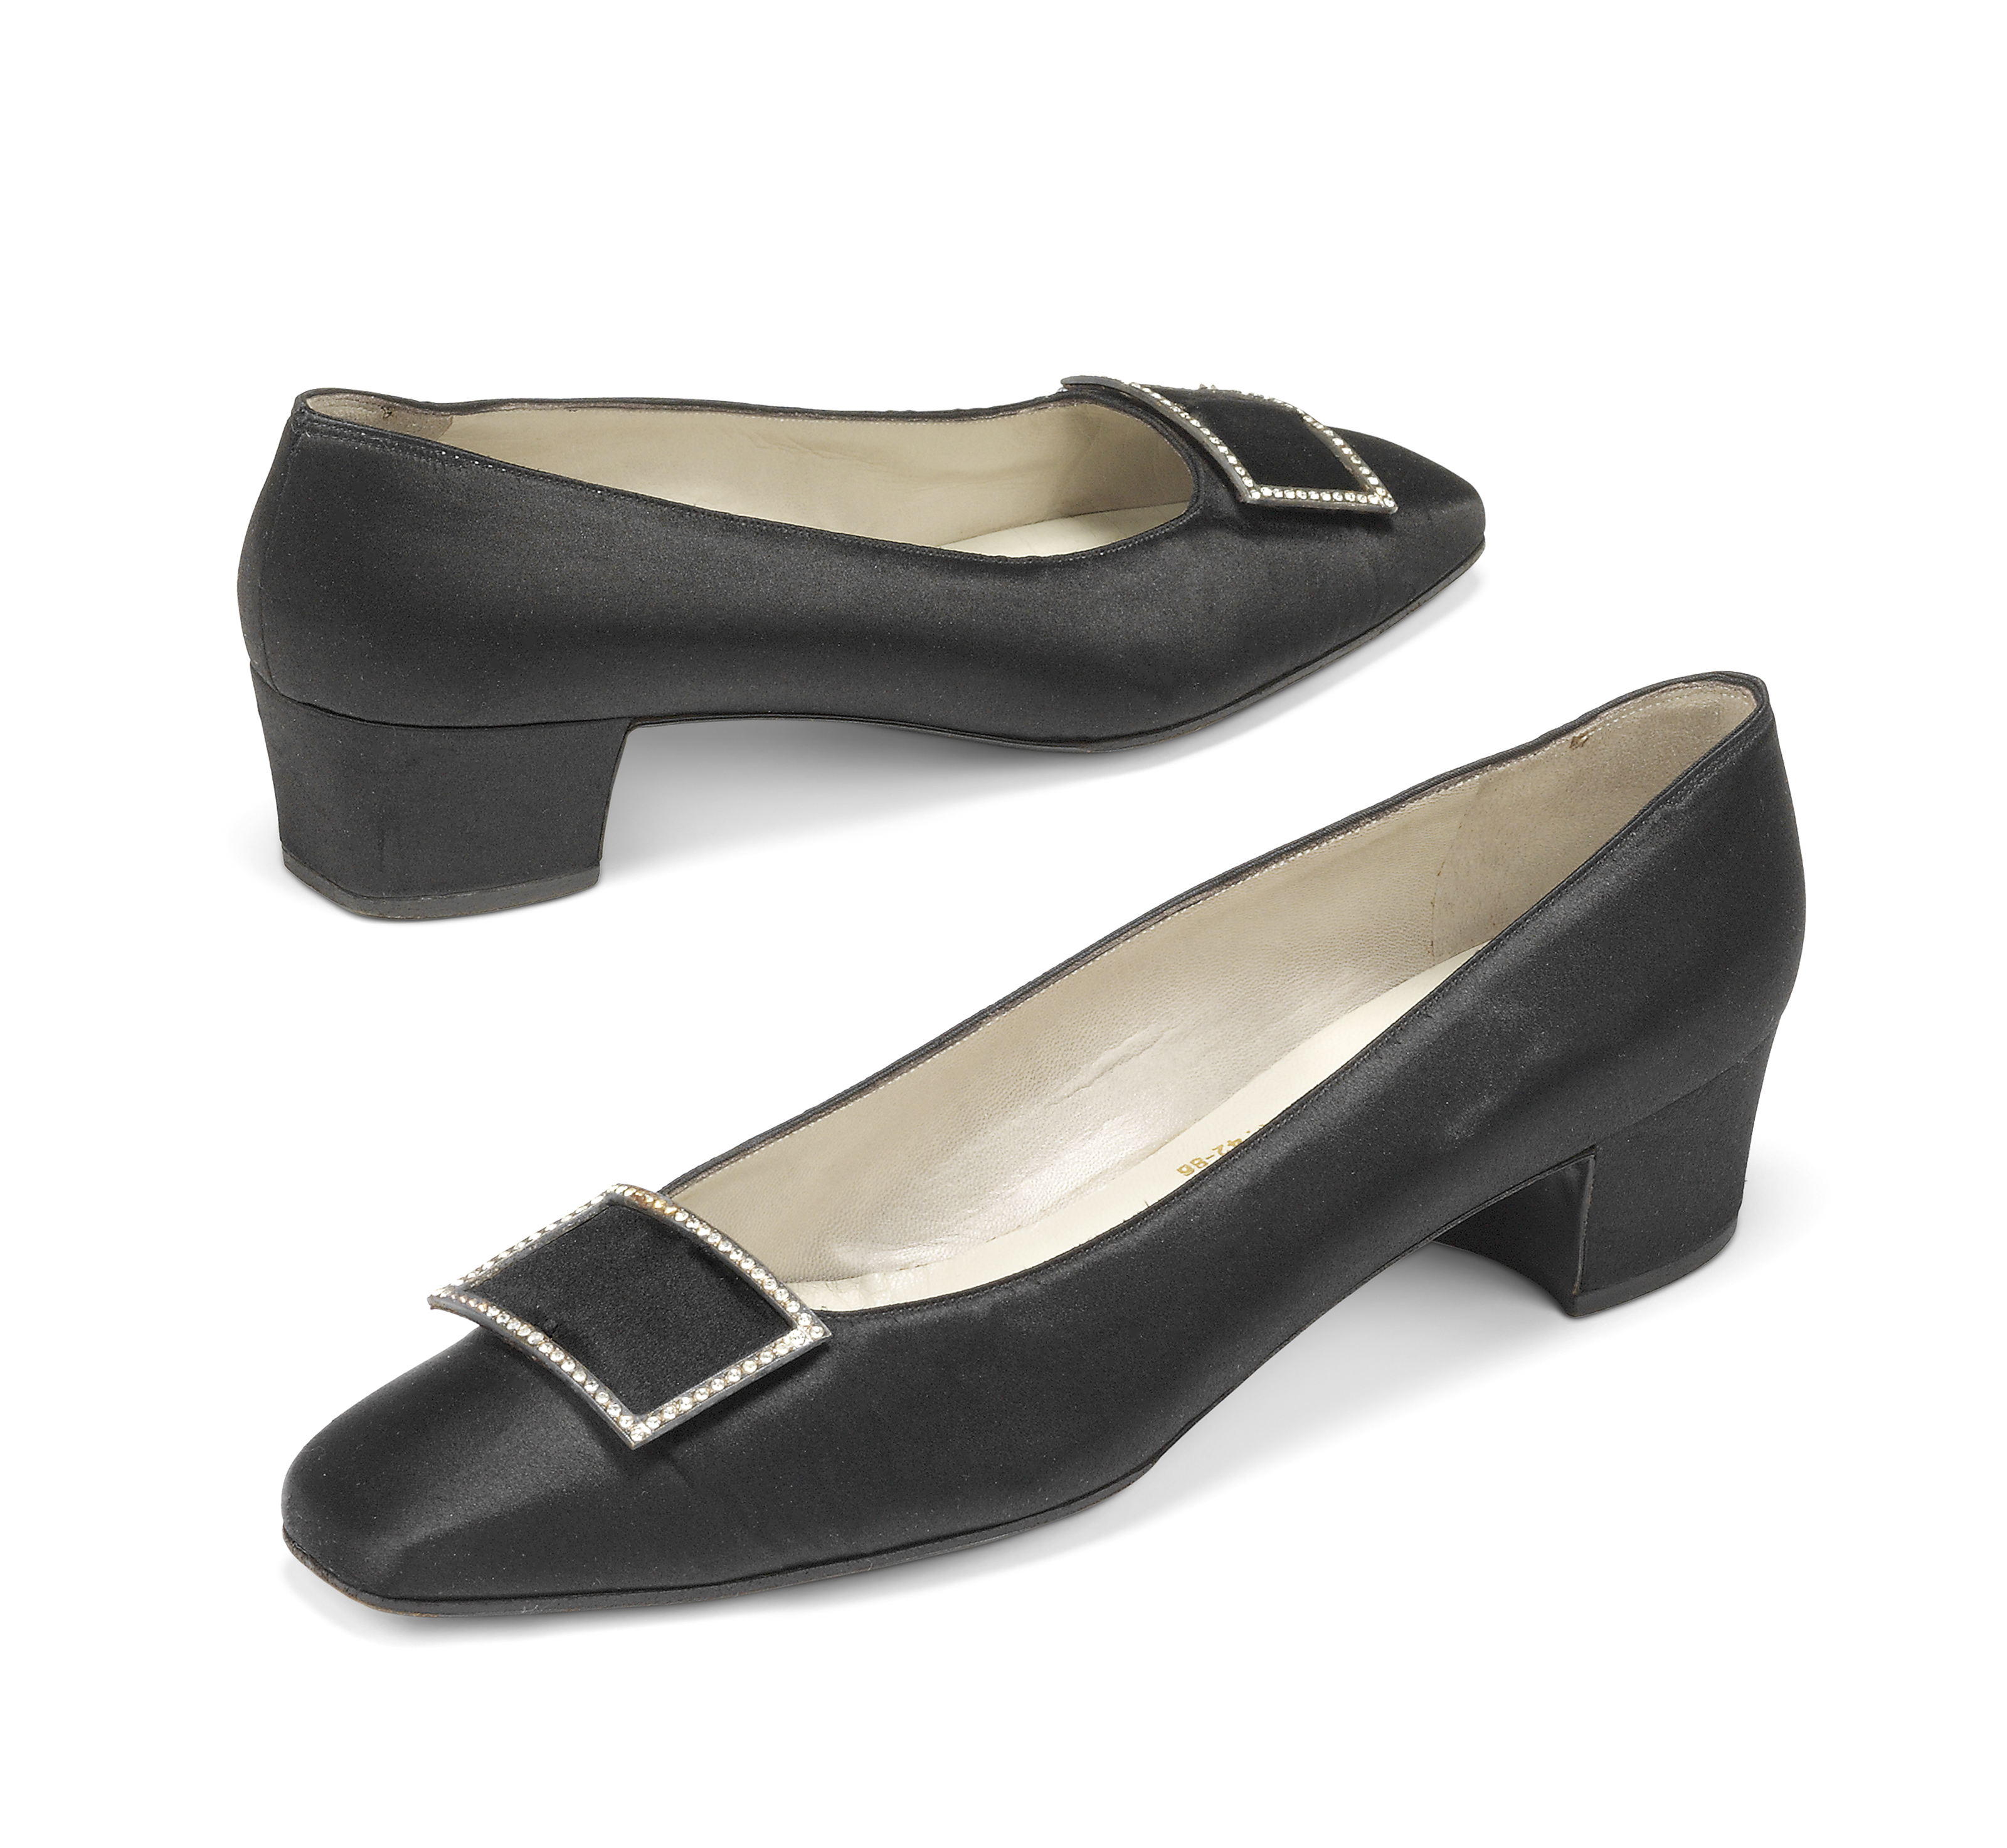 e8f7cba8bad A PAIR OF BLACK SATIN EVENING PUMPS